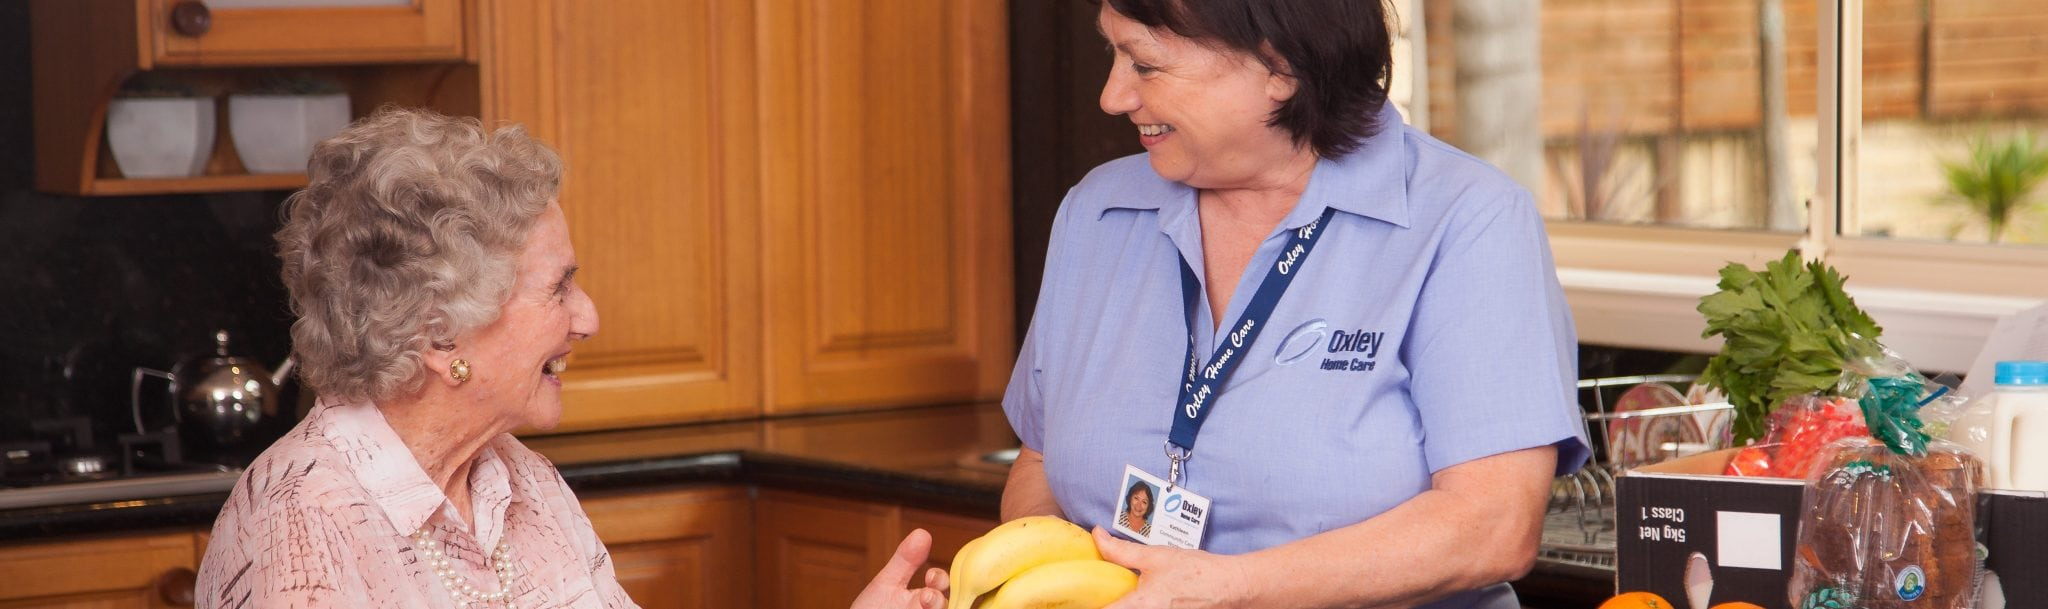 Carer undertaking meal preparation with a client